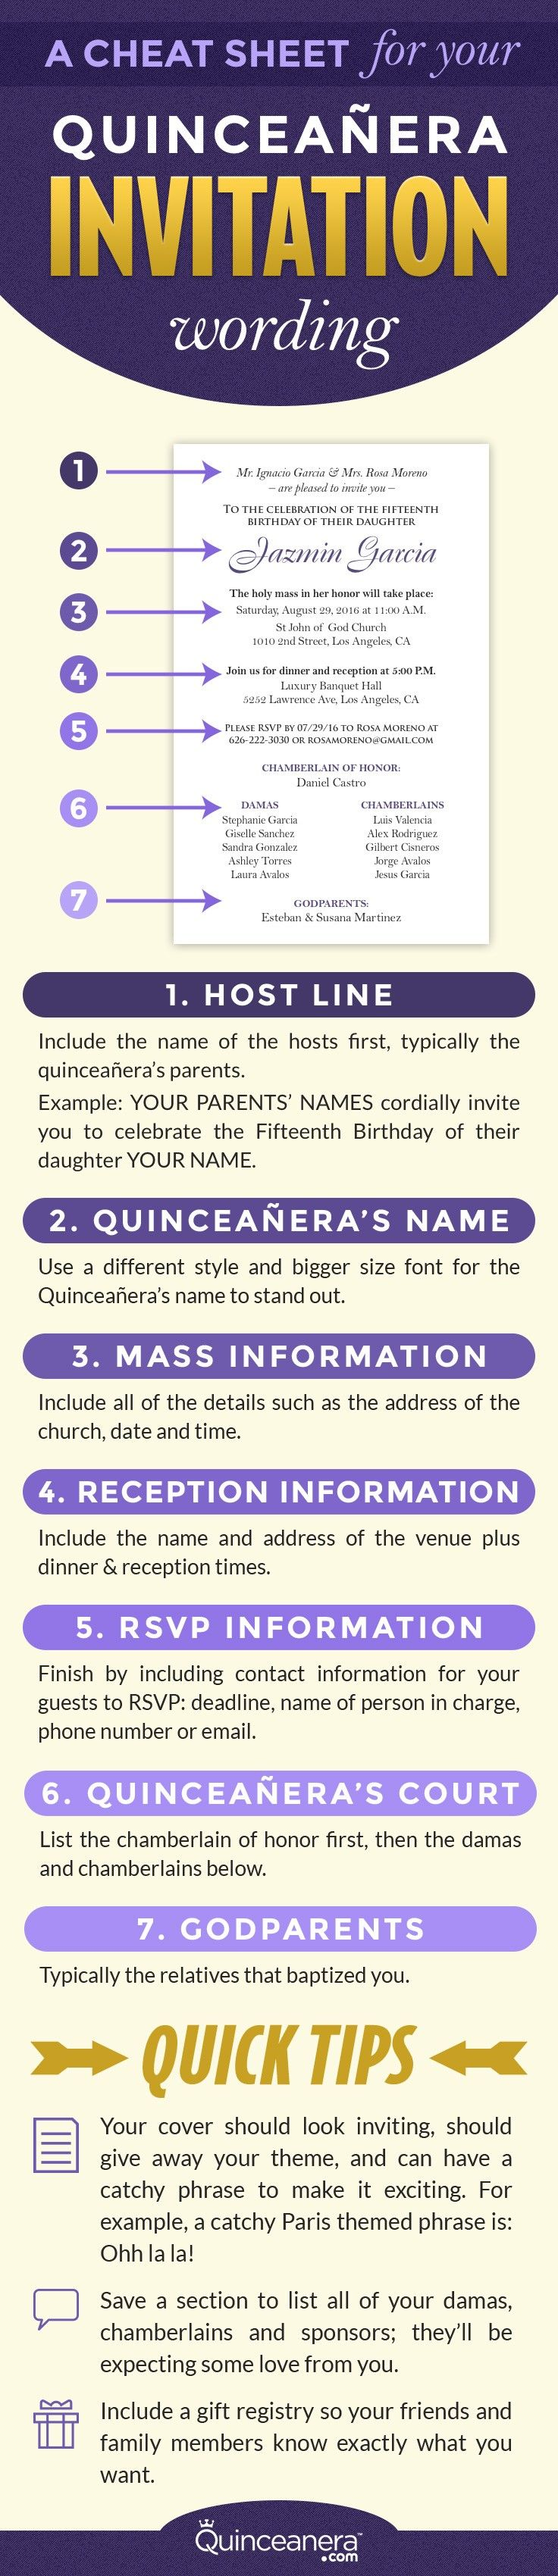 An example for your quinceanera invitation wording | http://www.quinceanera.com/invitations/a-cheat-sheet-for-you-quinceanera-invitation-wording/?utm_source=pinterest&utm_medium=social&utm_campaign=invitations-a-cheat-sheet-for-you-quinceanera-invitation-wording